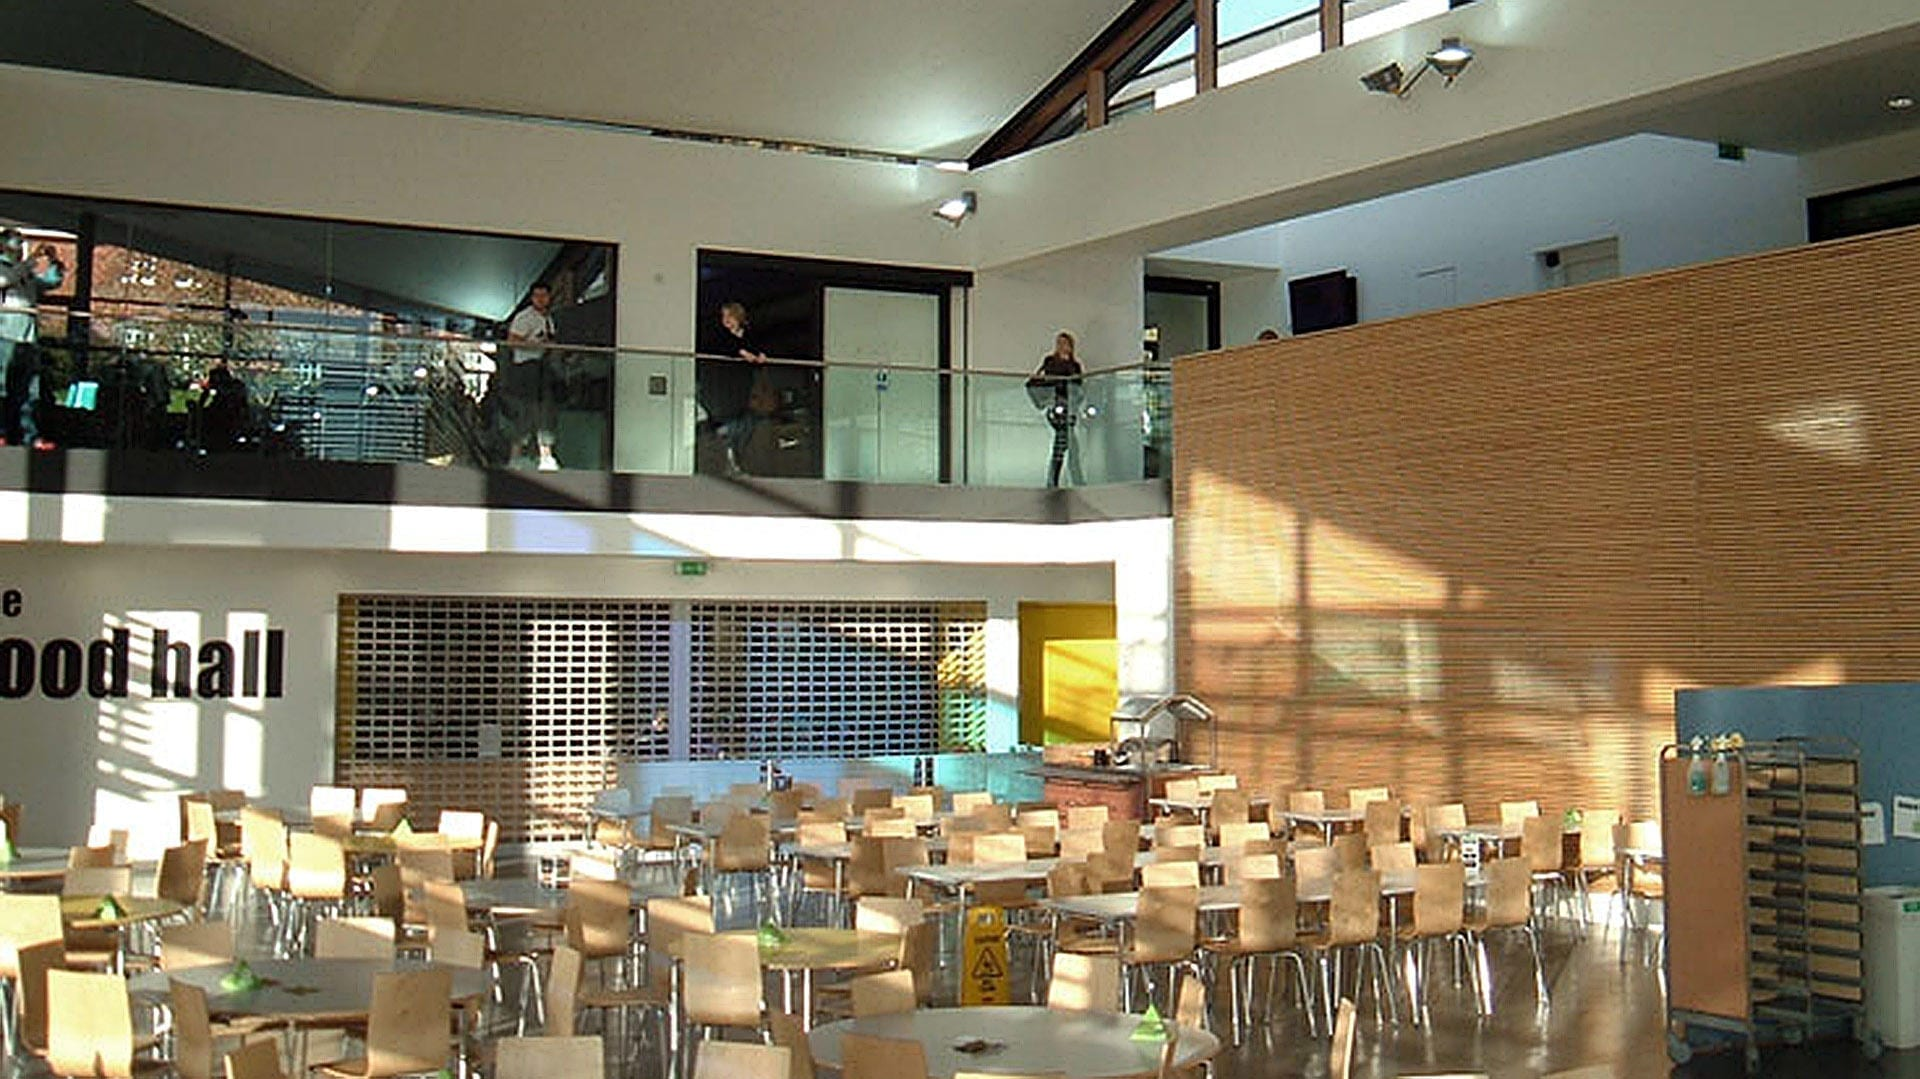 UniversityWinchester_interiordesign_spaceuk1